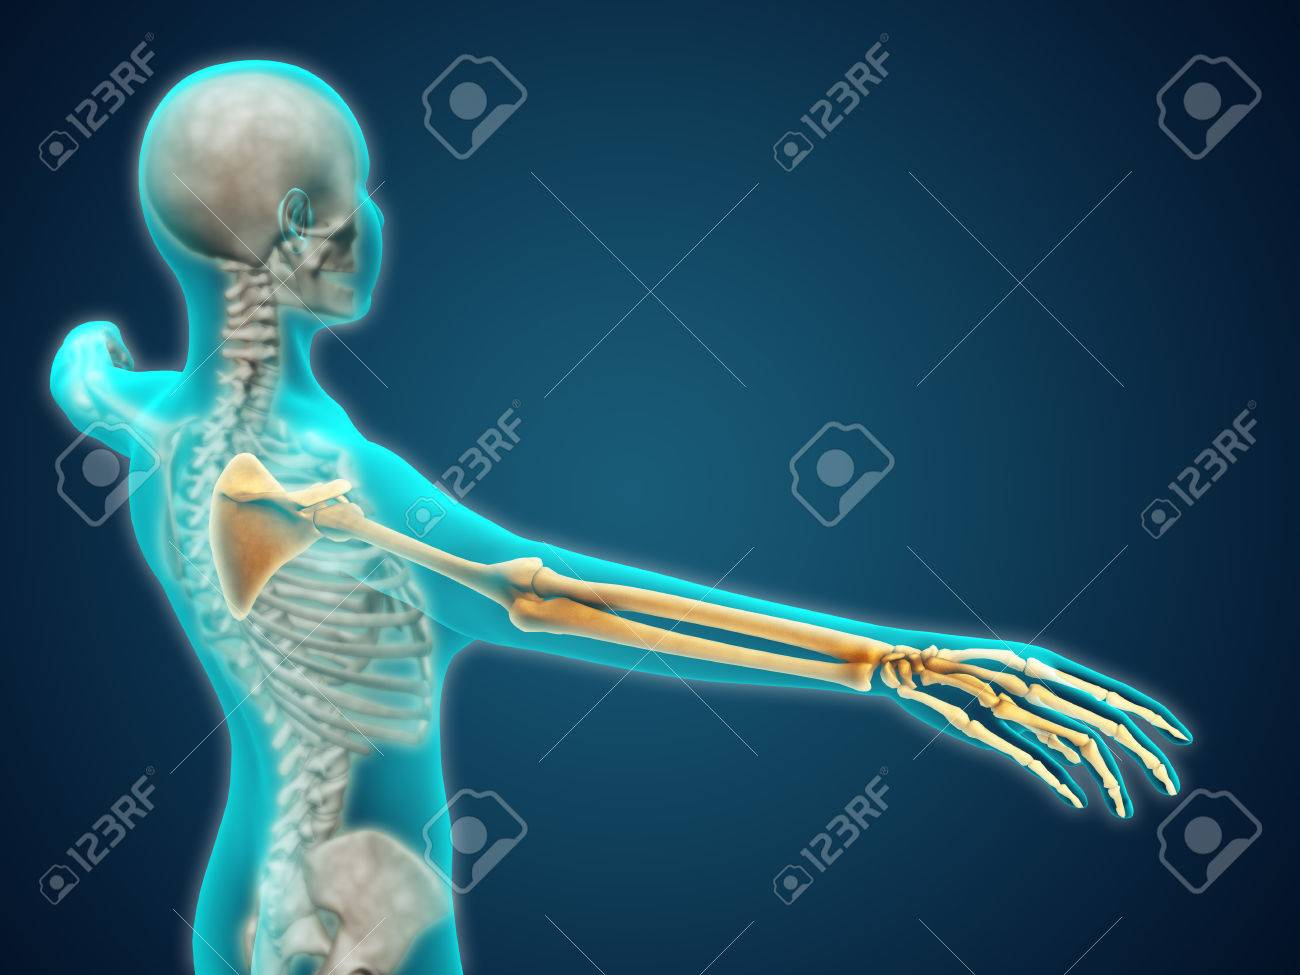 X Ray View Of Human Body Showing Skeletal Bones In The Arm And